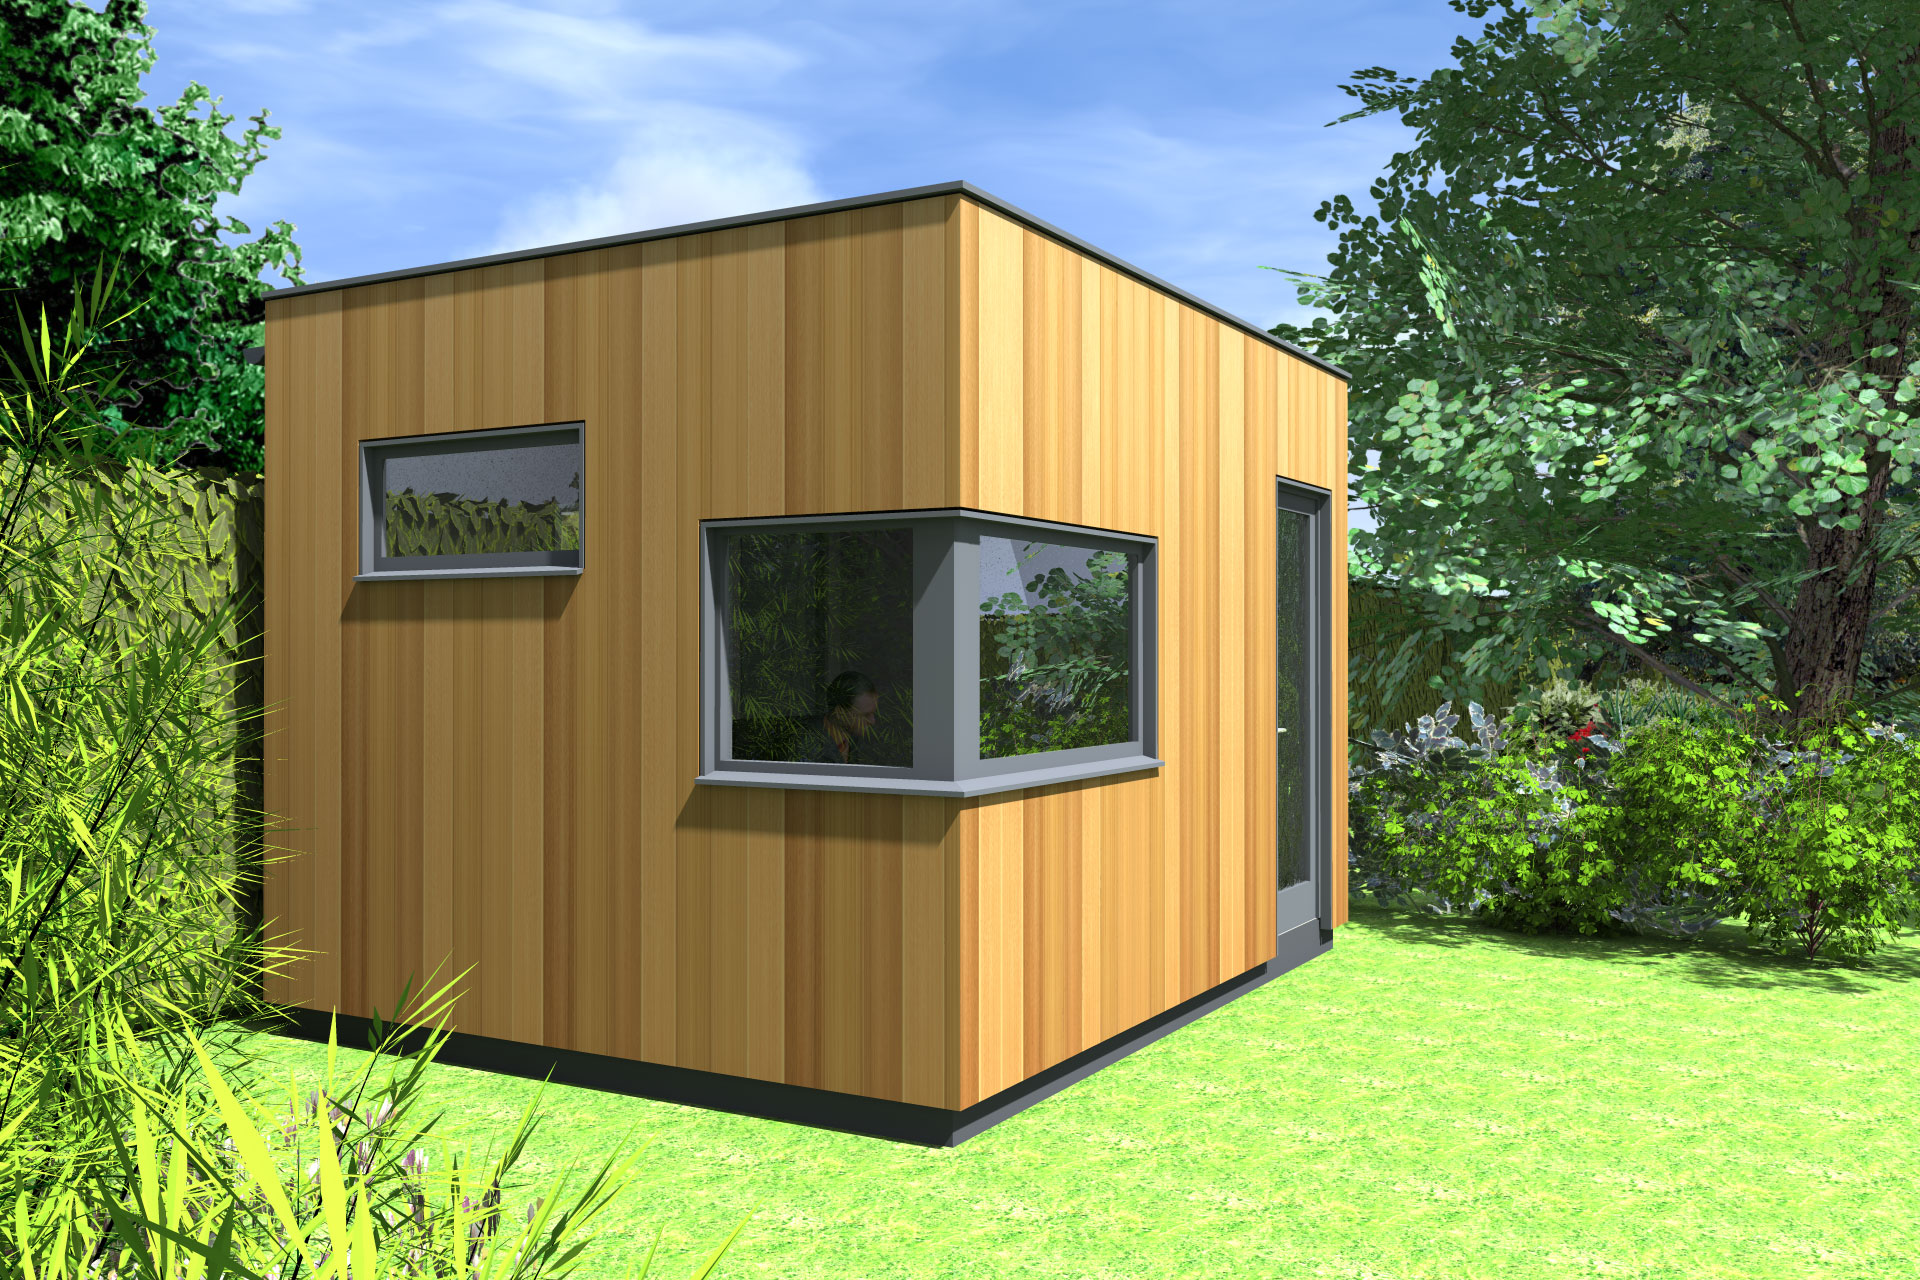 Insulated garden office contemporary garden office for Insulated office